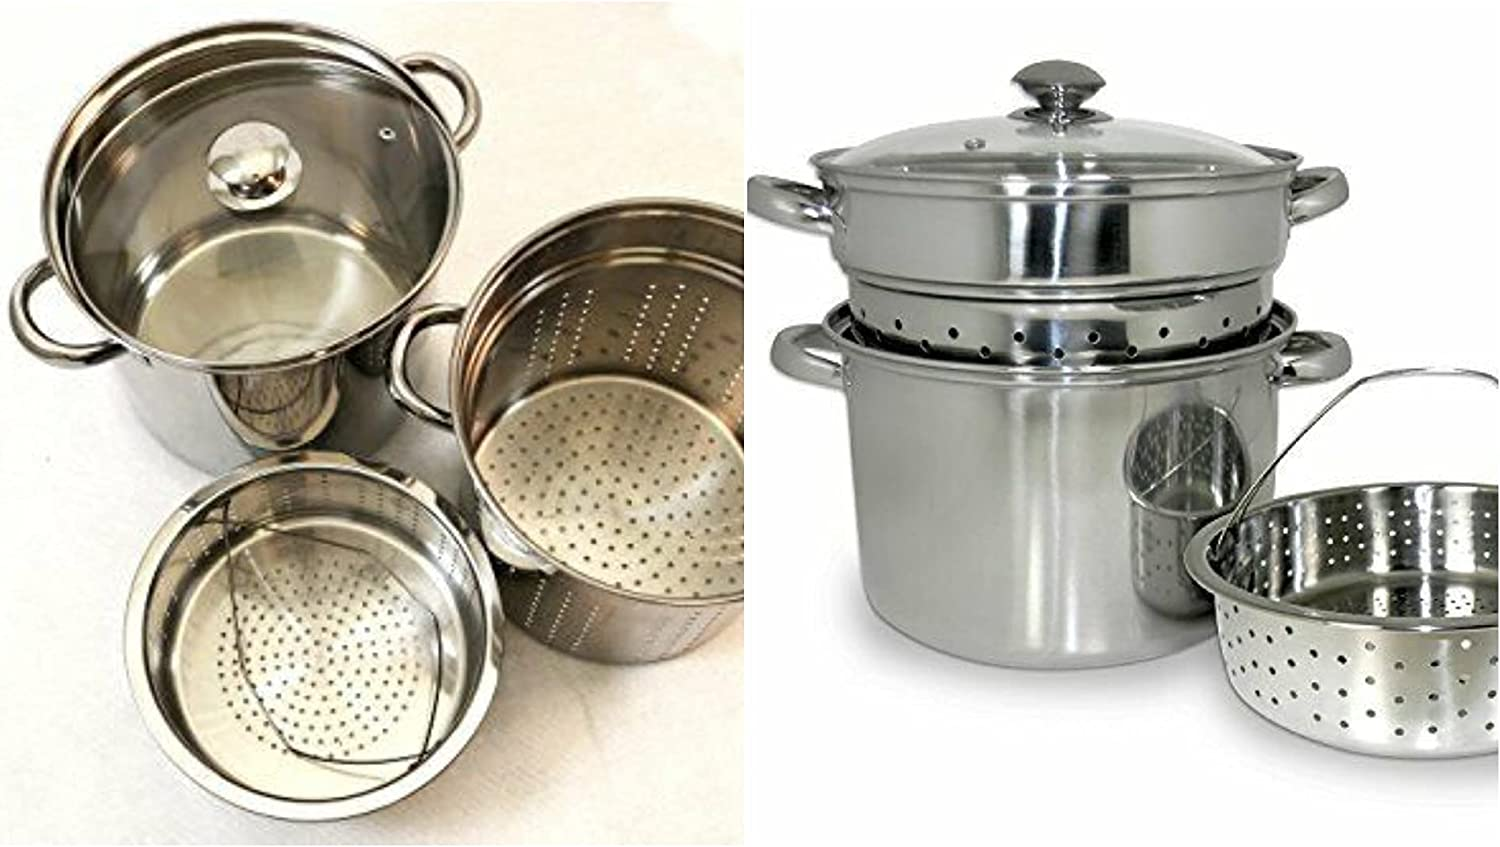 1 pcs - 20 Qt Multifunction Pasta Cooker Stainless Steel w/ Encapsulated Base - Kitchen Supplies - WS05